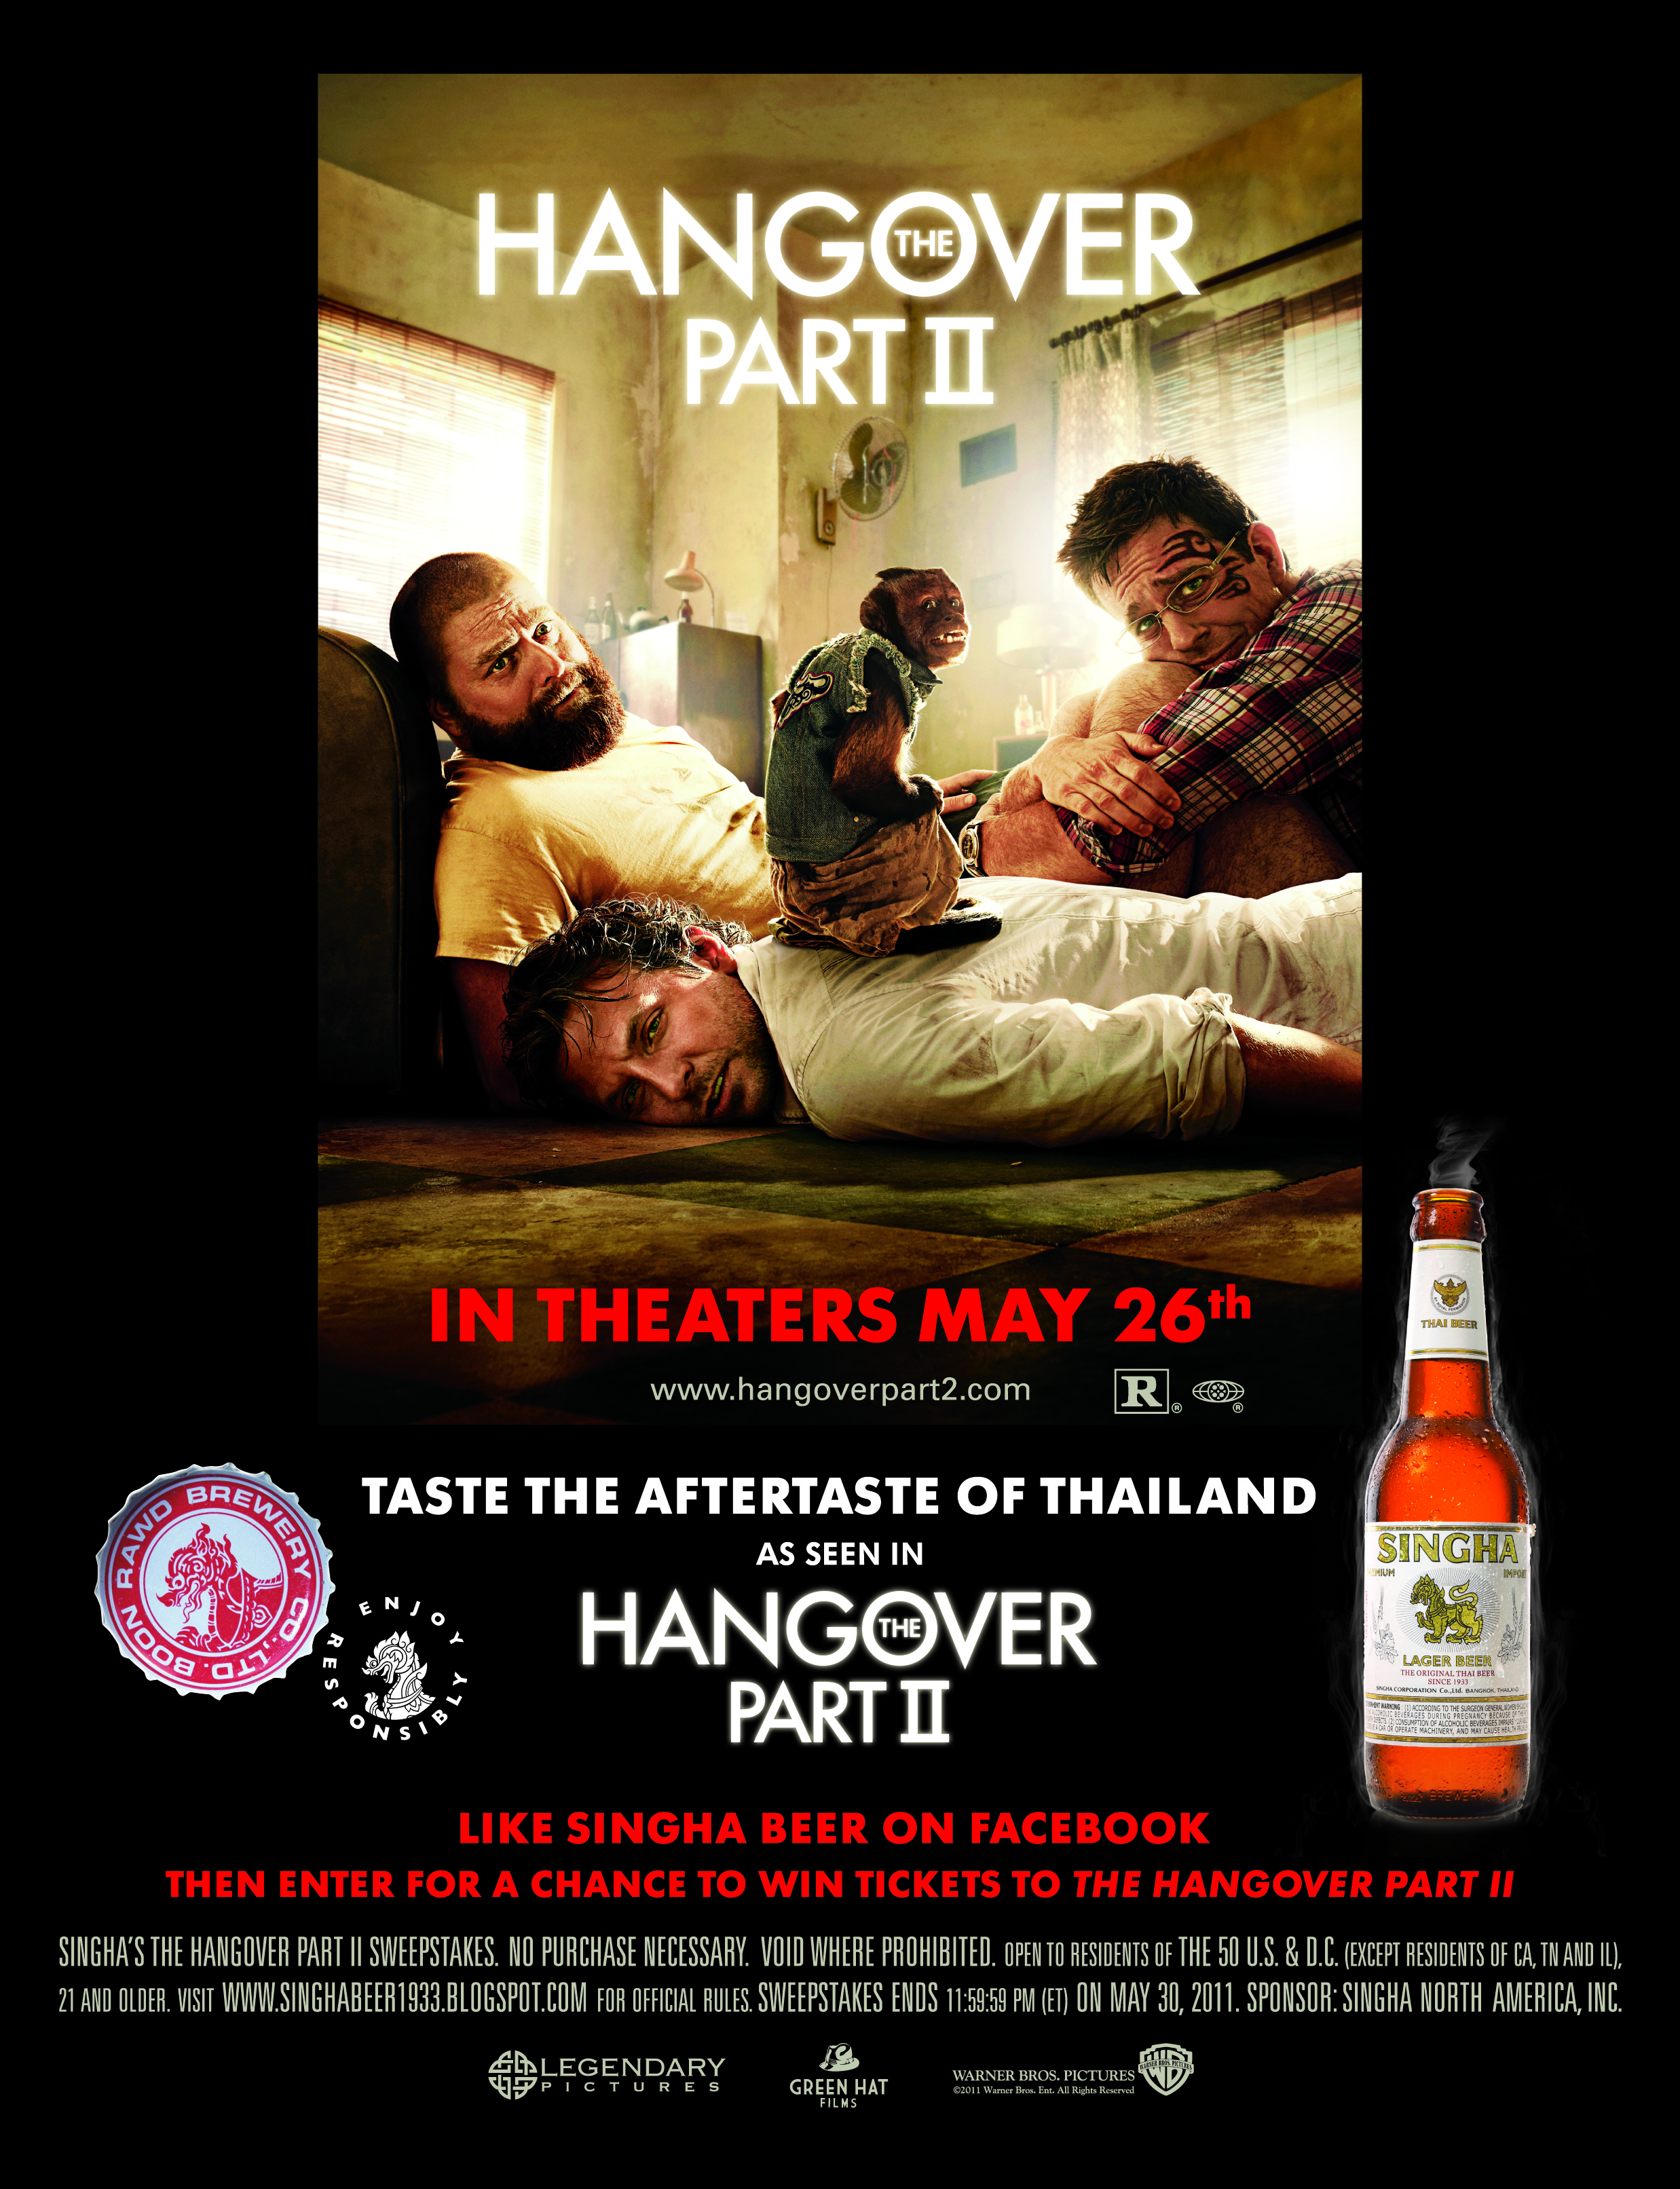 Singha Beer03_The Hangover Part II_Placement&Sponsorship.jpg